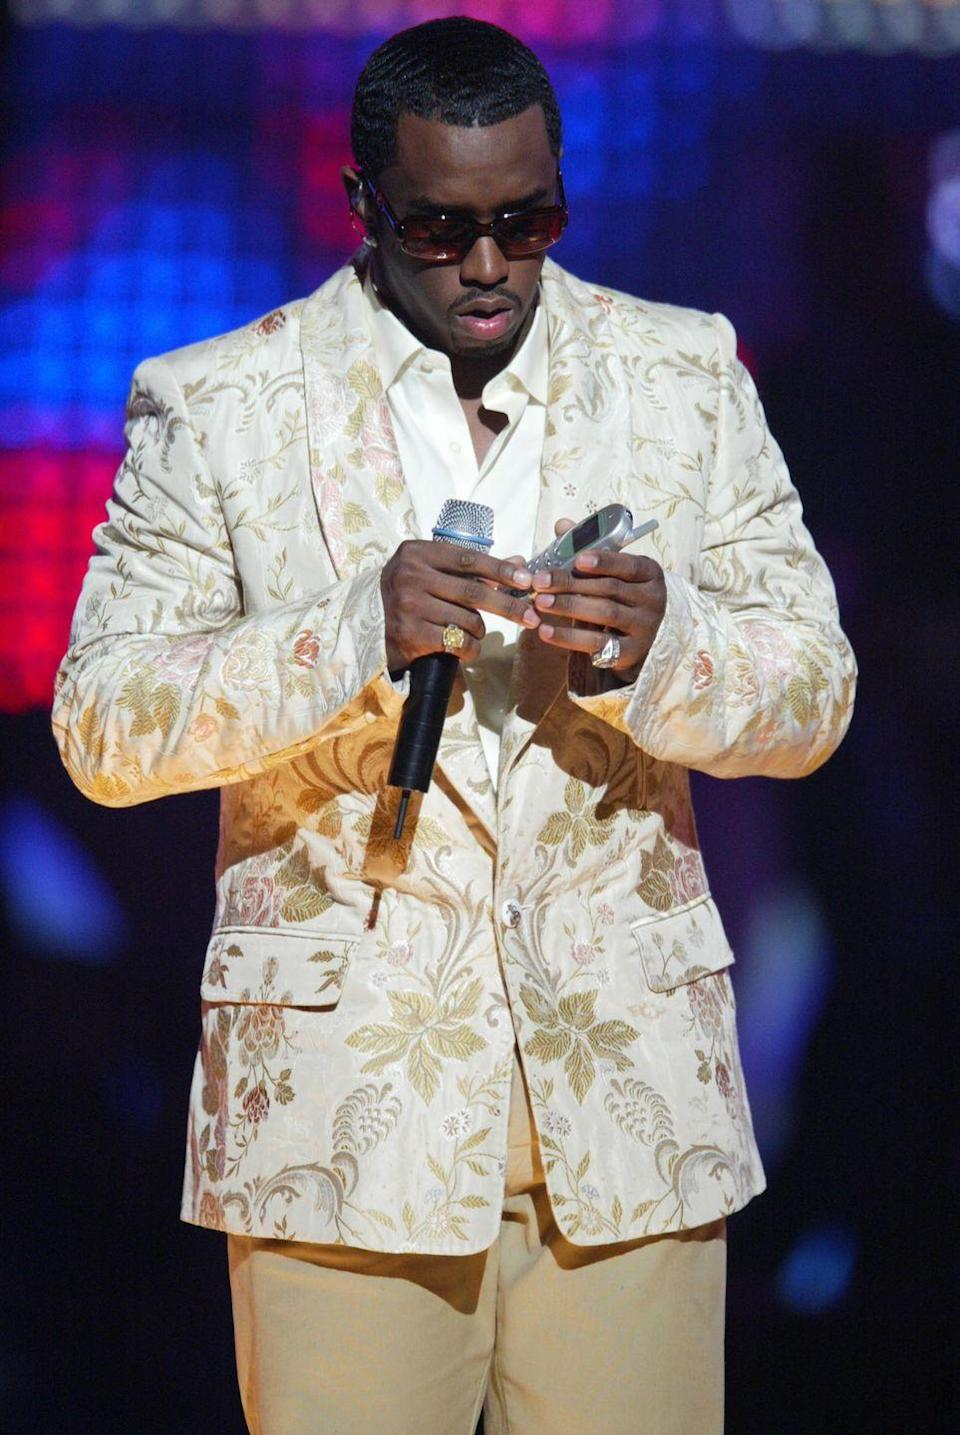 <p>Puffy popping his battery back in (?) at the European Music Awards.</p>